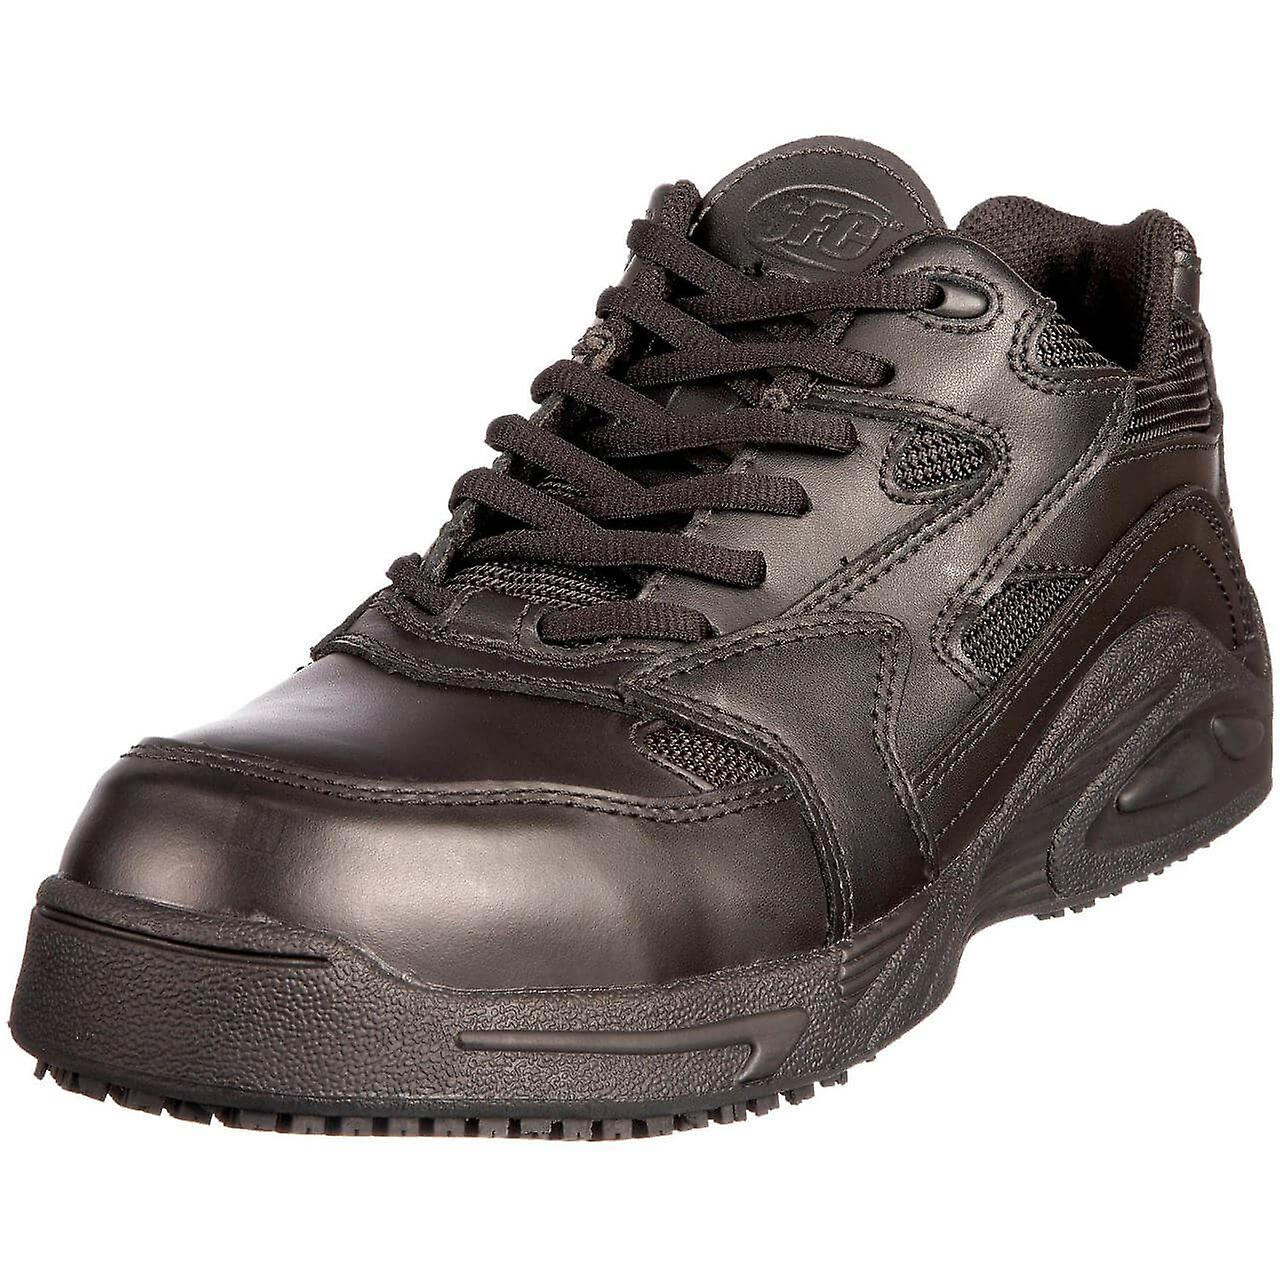 Shoes for Crews Trainer Rainer Black Harrier Male 5258